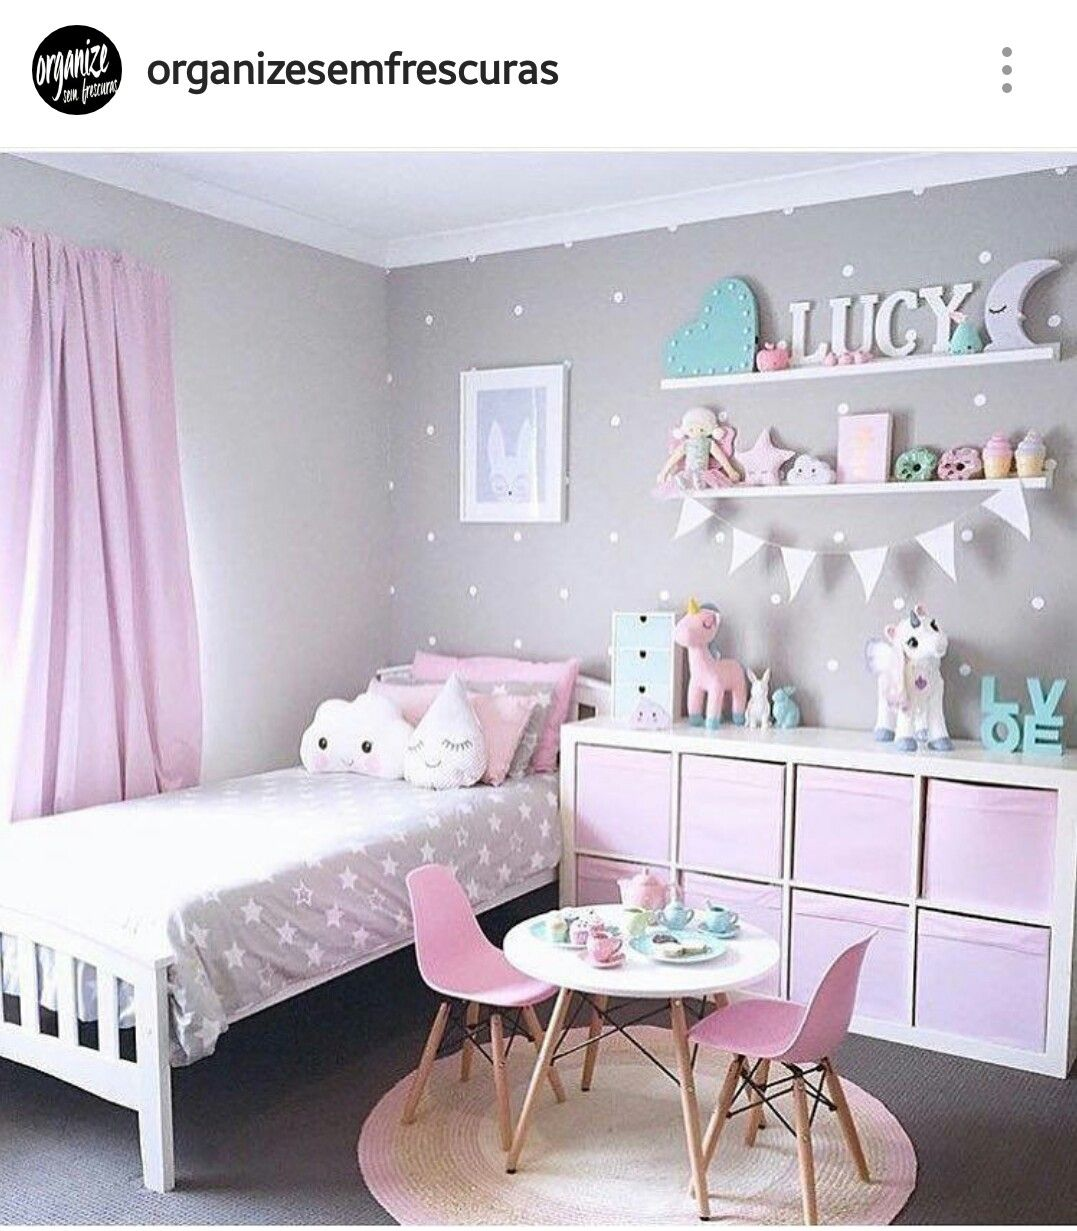 White Shelving Unit With Pink Clothe Totes. Hang On Wall To Create Space 🚀  Put Shelf On Wall On The Side Of Bed For Pictures And Decor And Hang Spice  Racks ...